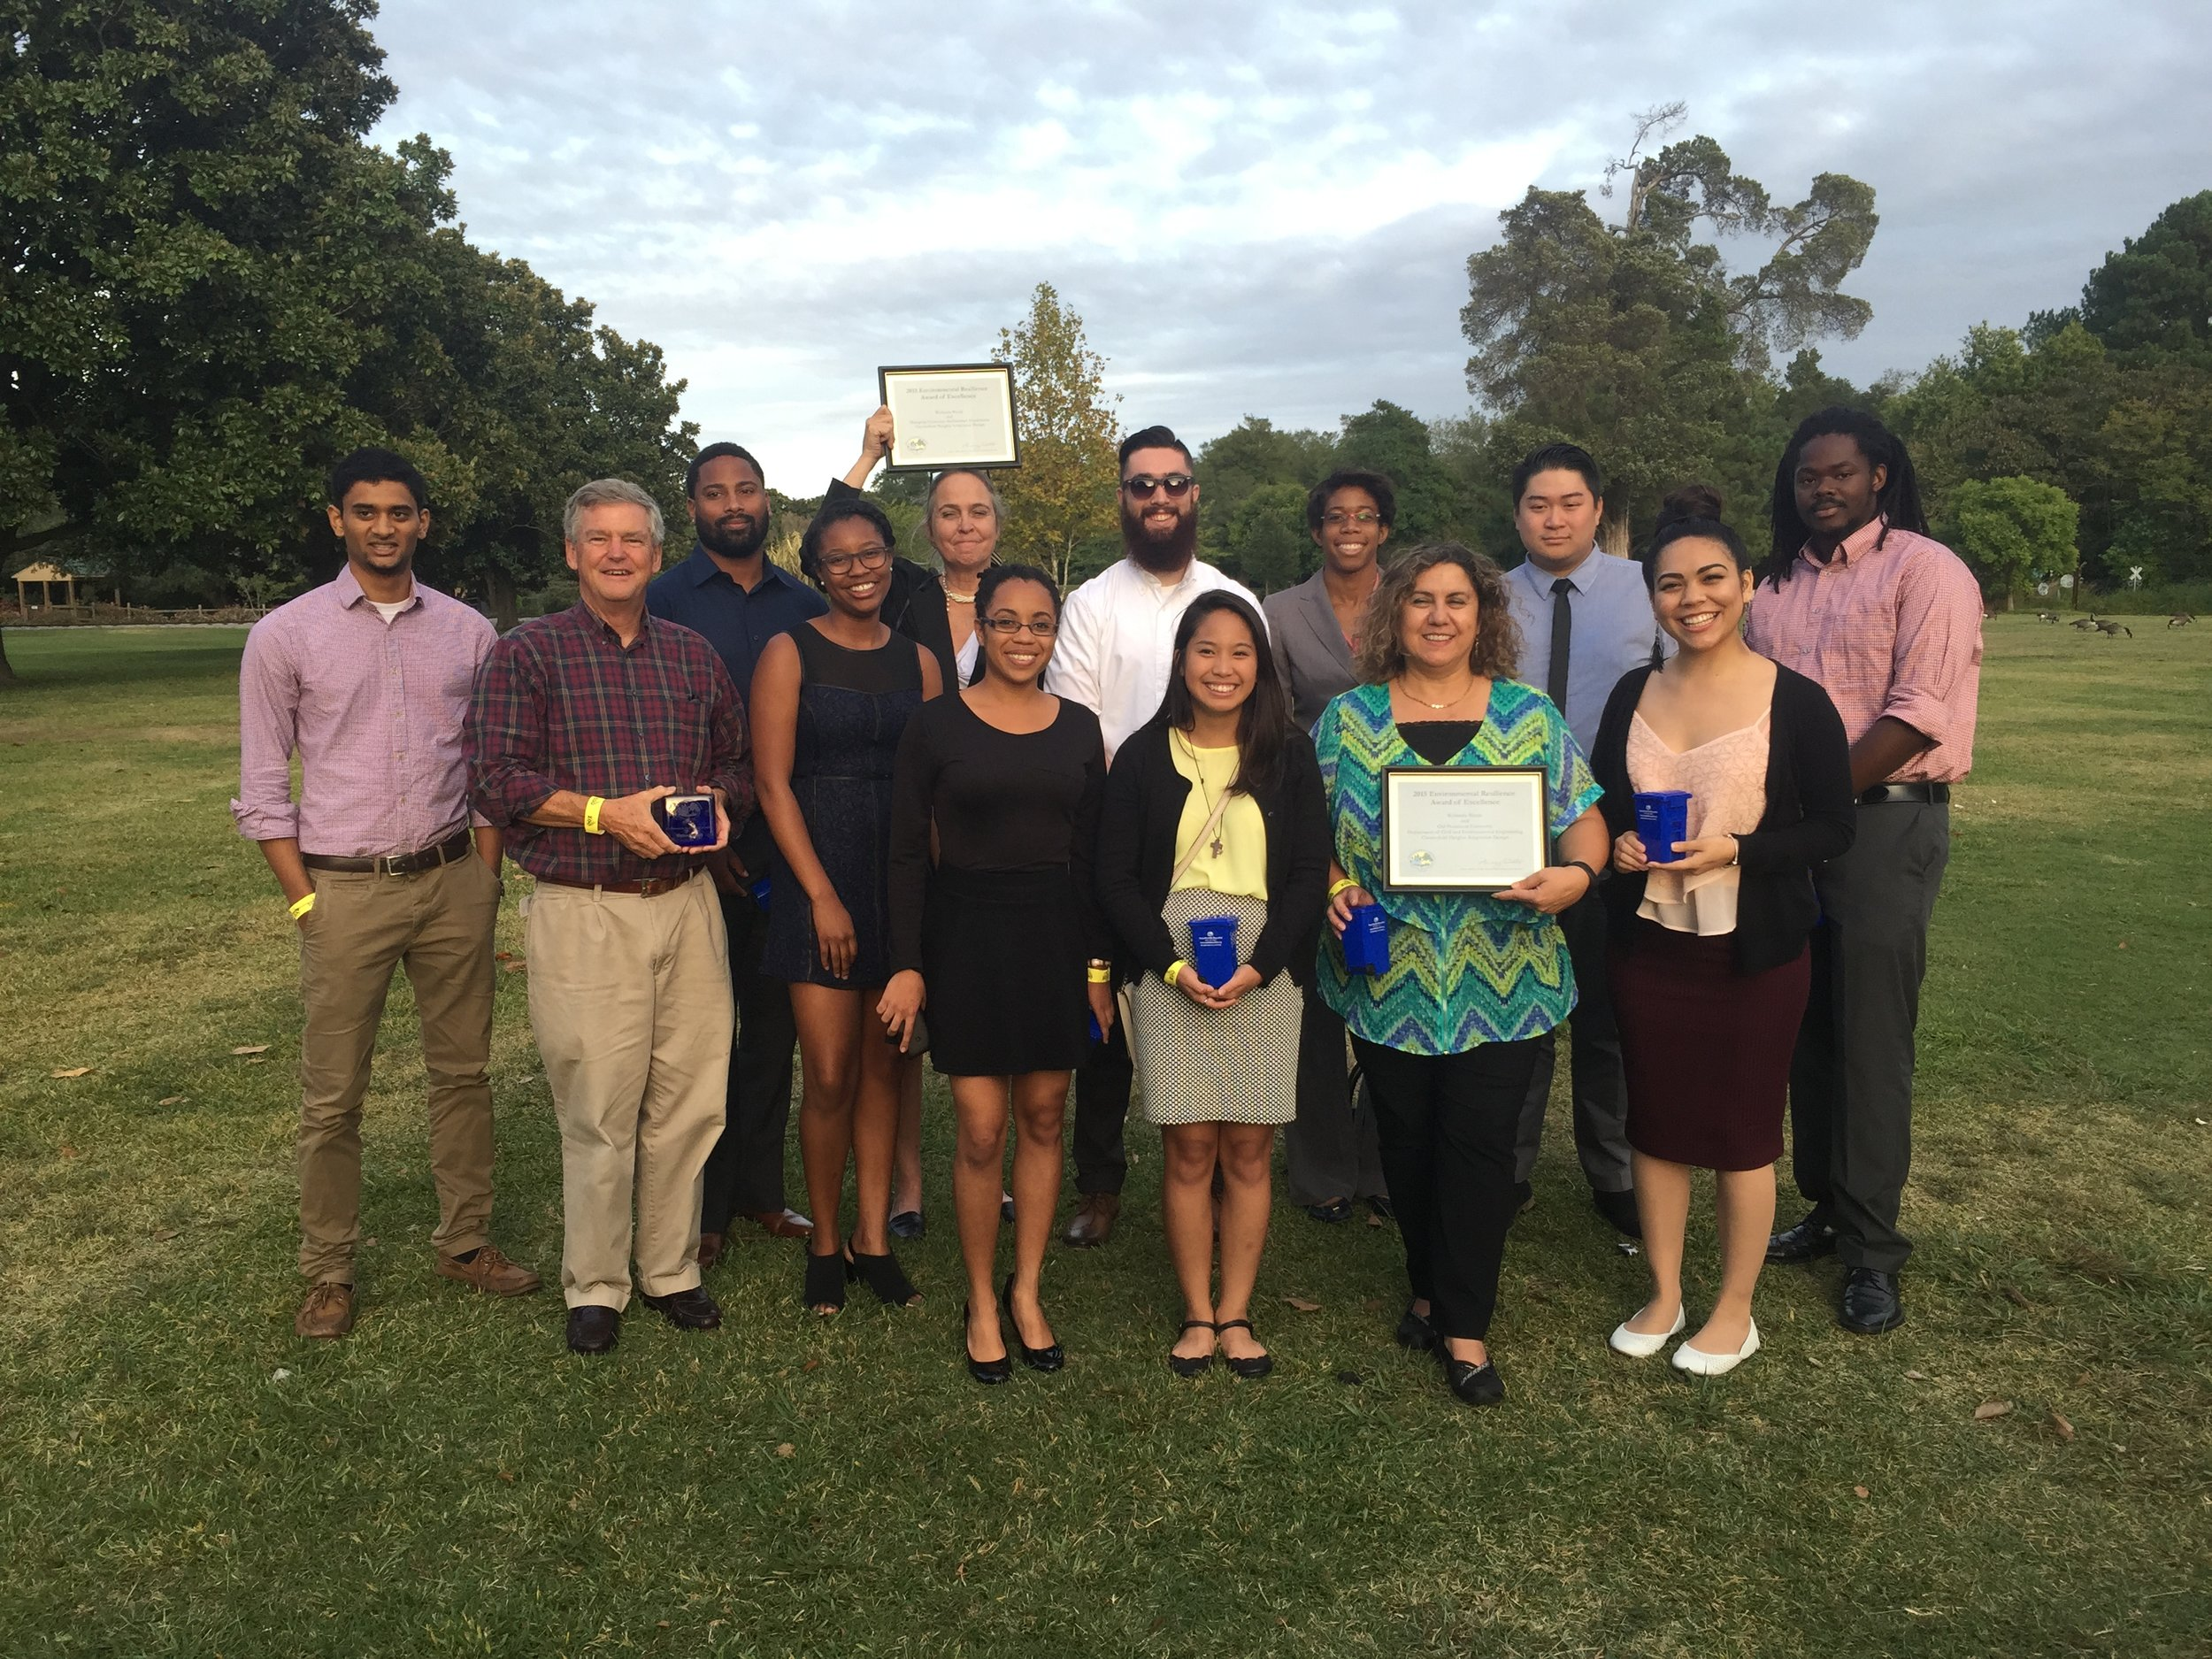 Some of the Students and Professors Get Award from Norfolk